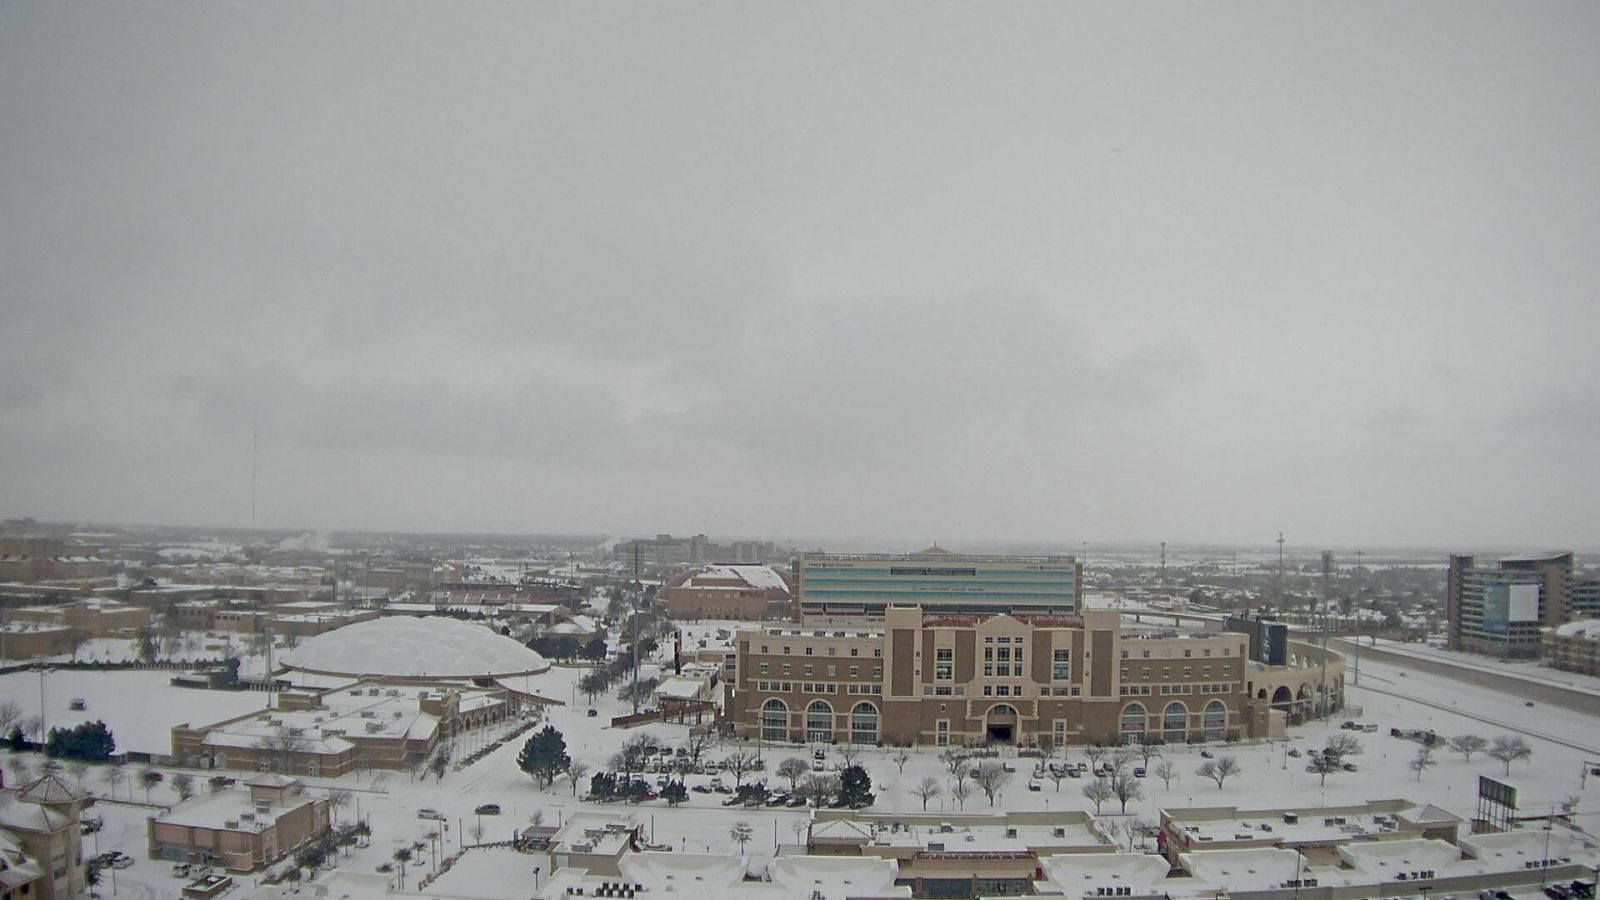 The north side of the Texas Tech campus around 10 am on February 27, 2015. The image is courtesy of KAMC.